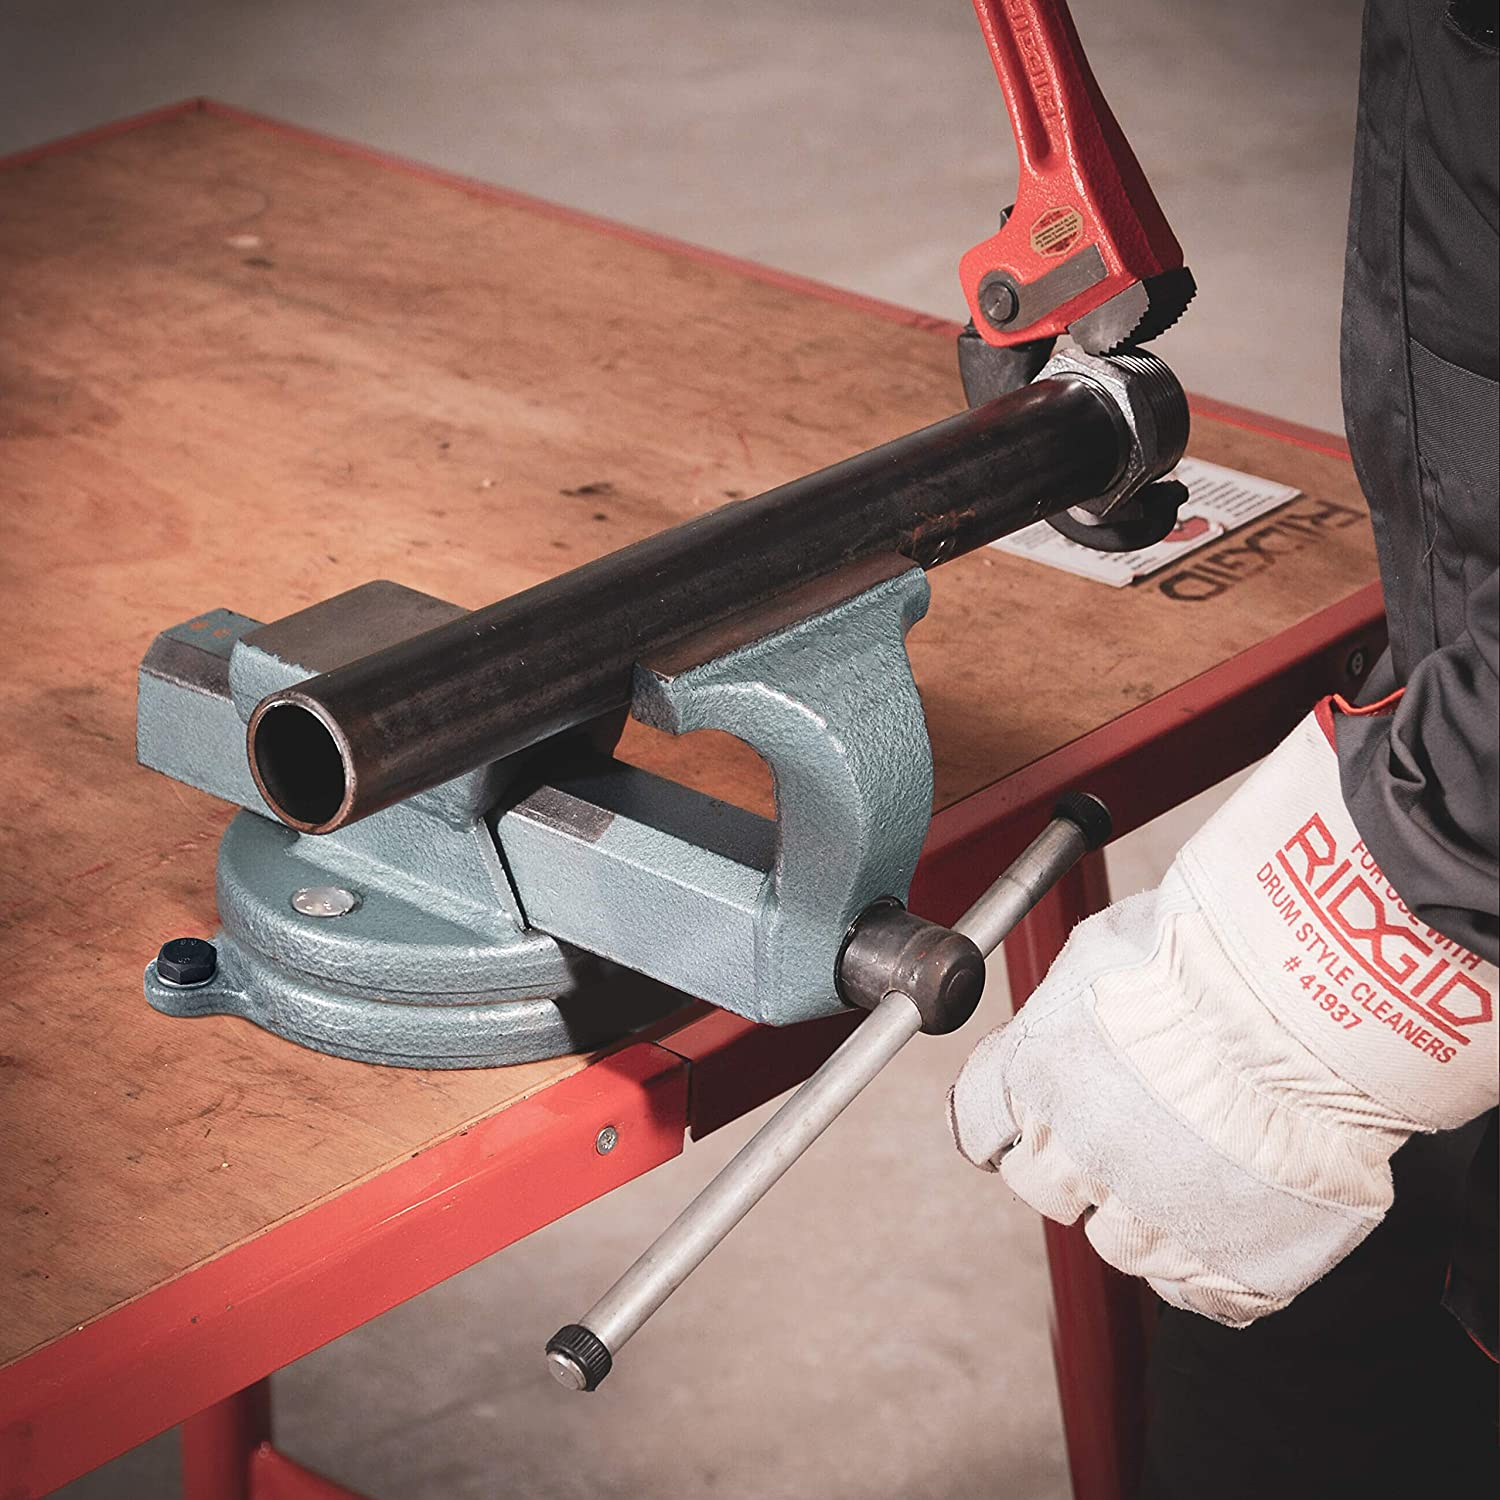 RIDGID 48058 Model 120 Compact Forged Vice with Full 360 Rotation